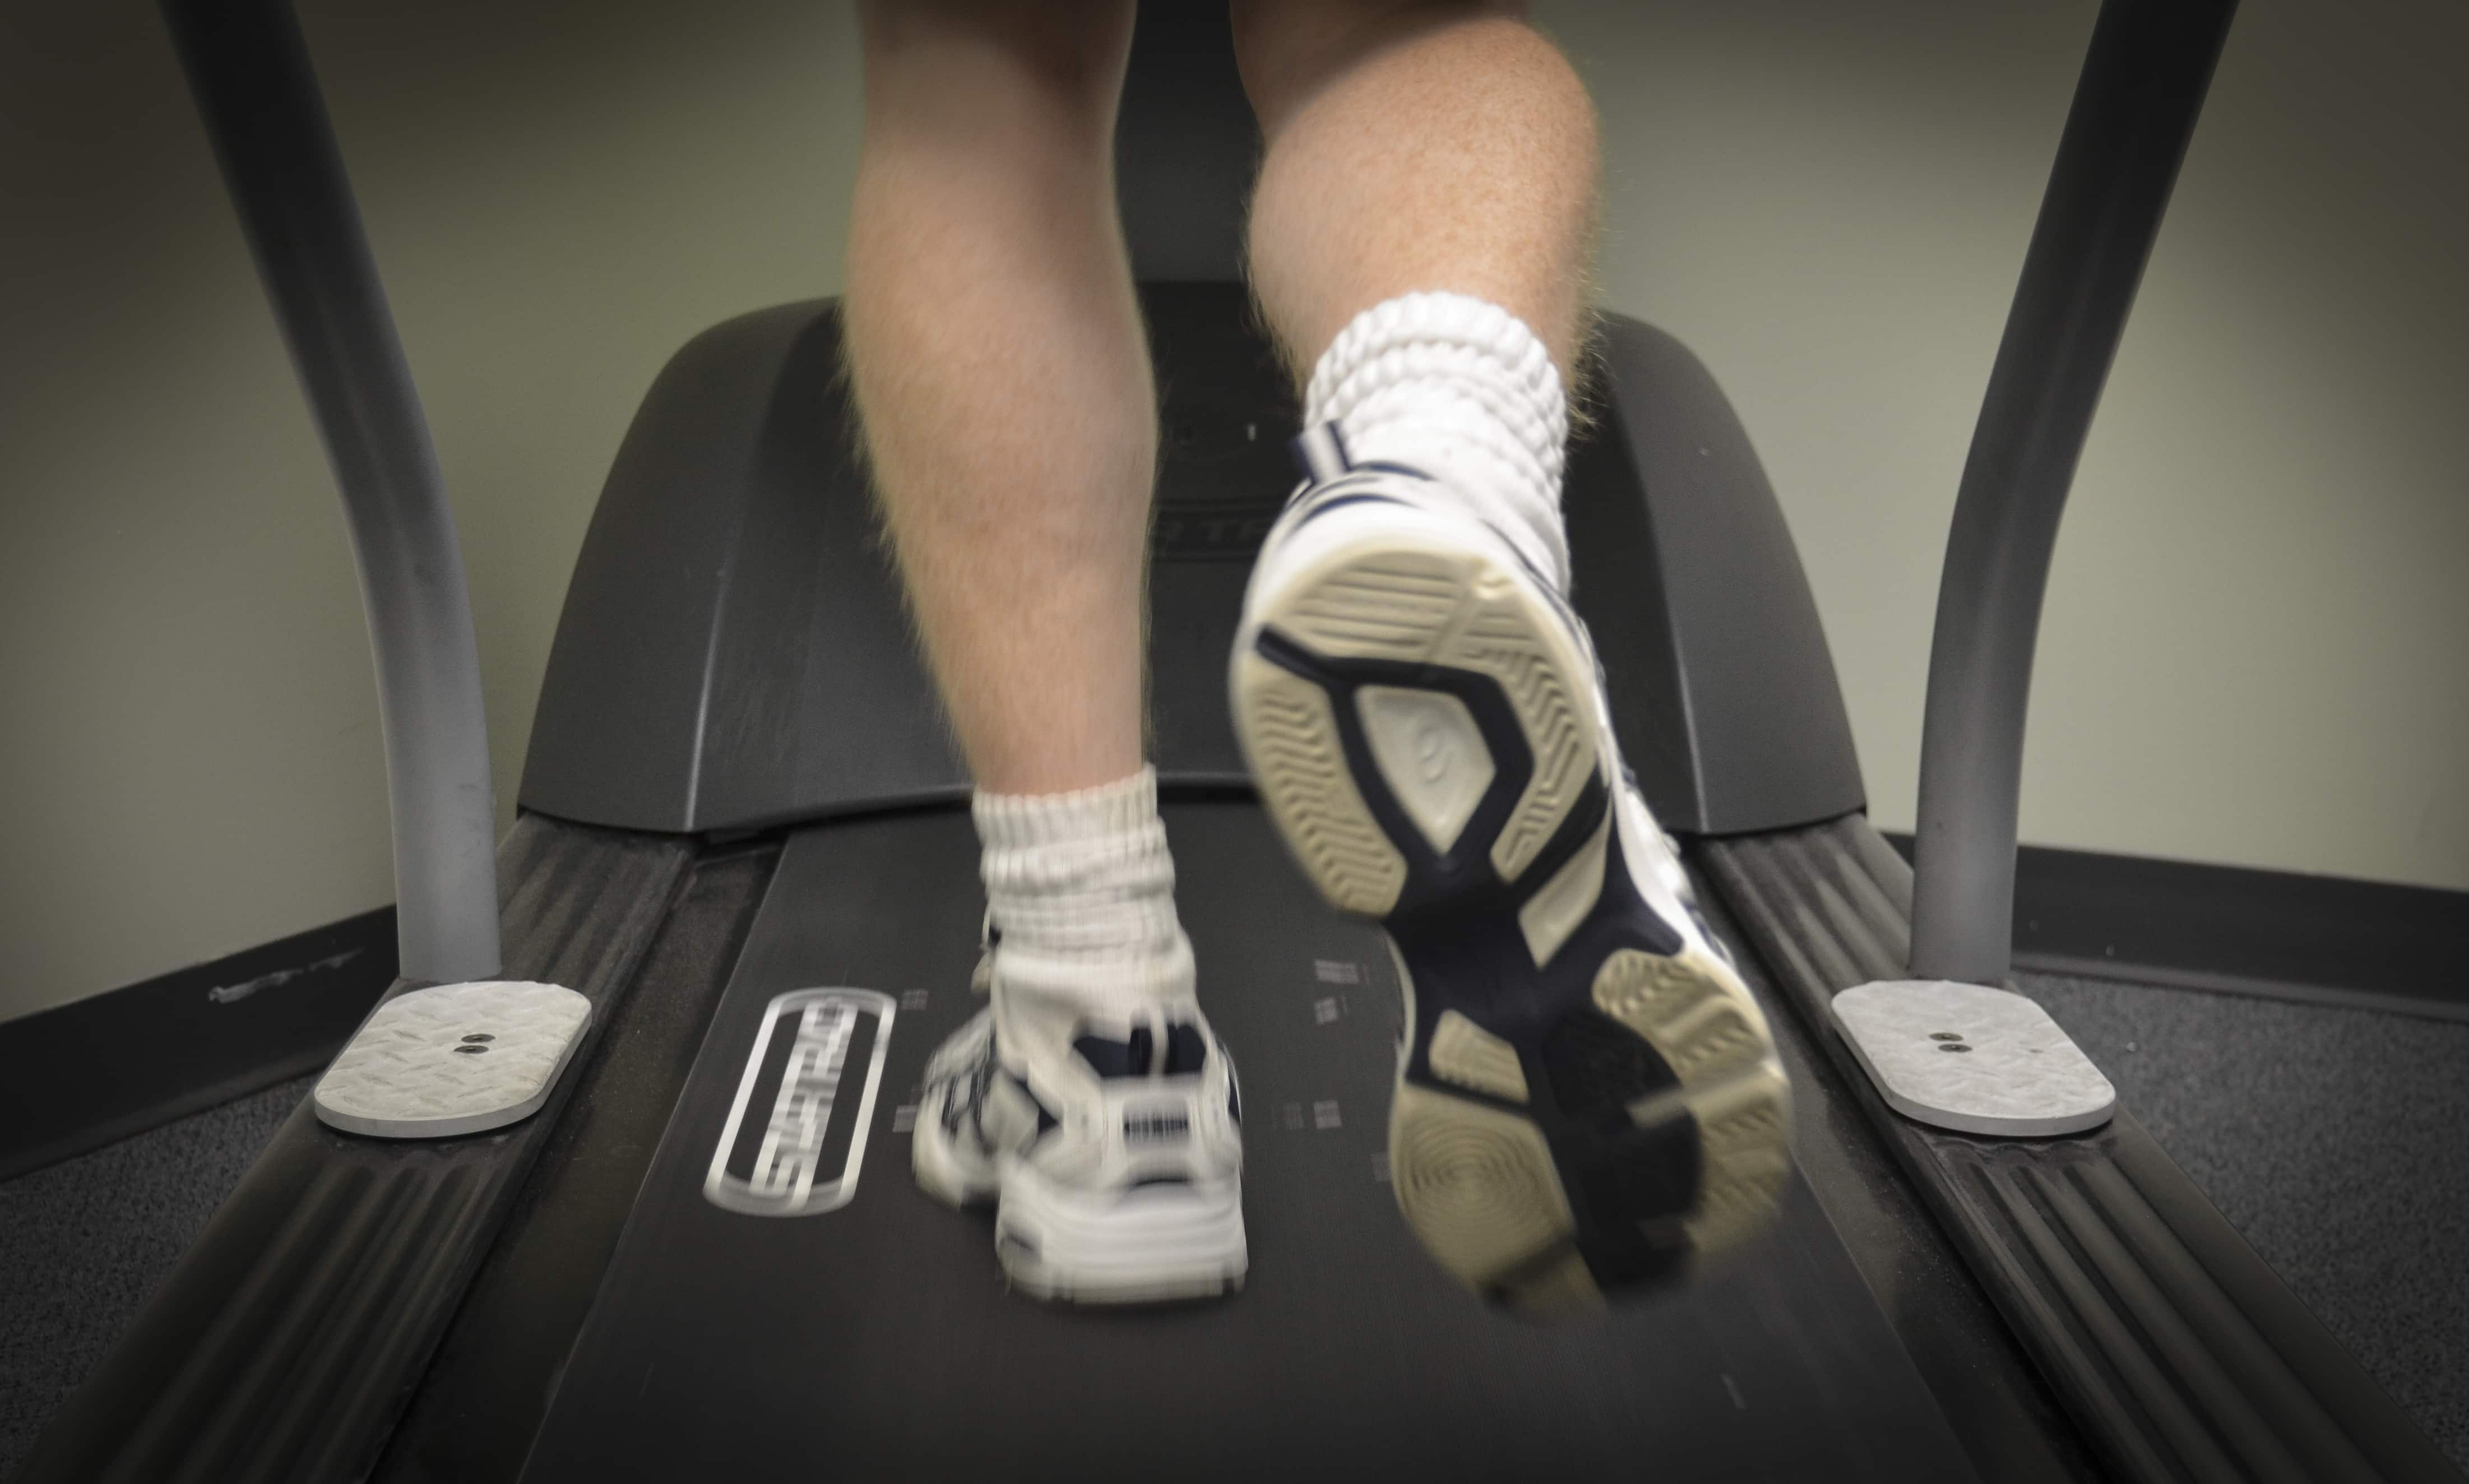 Best Treadmill for Overweight Beginners - The Definitive Guide (2019)